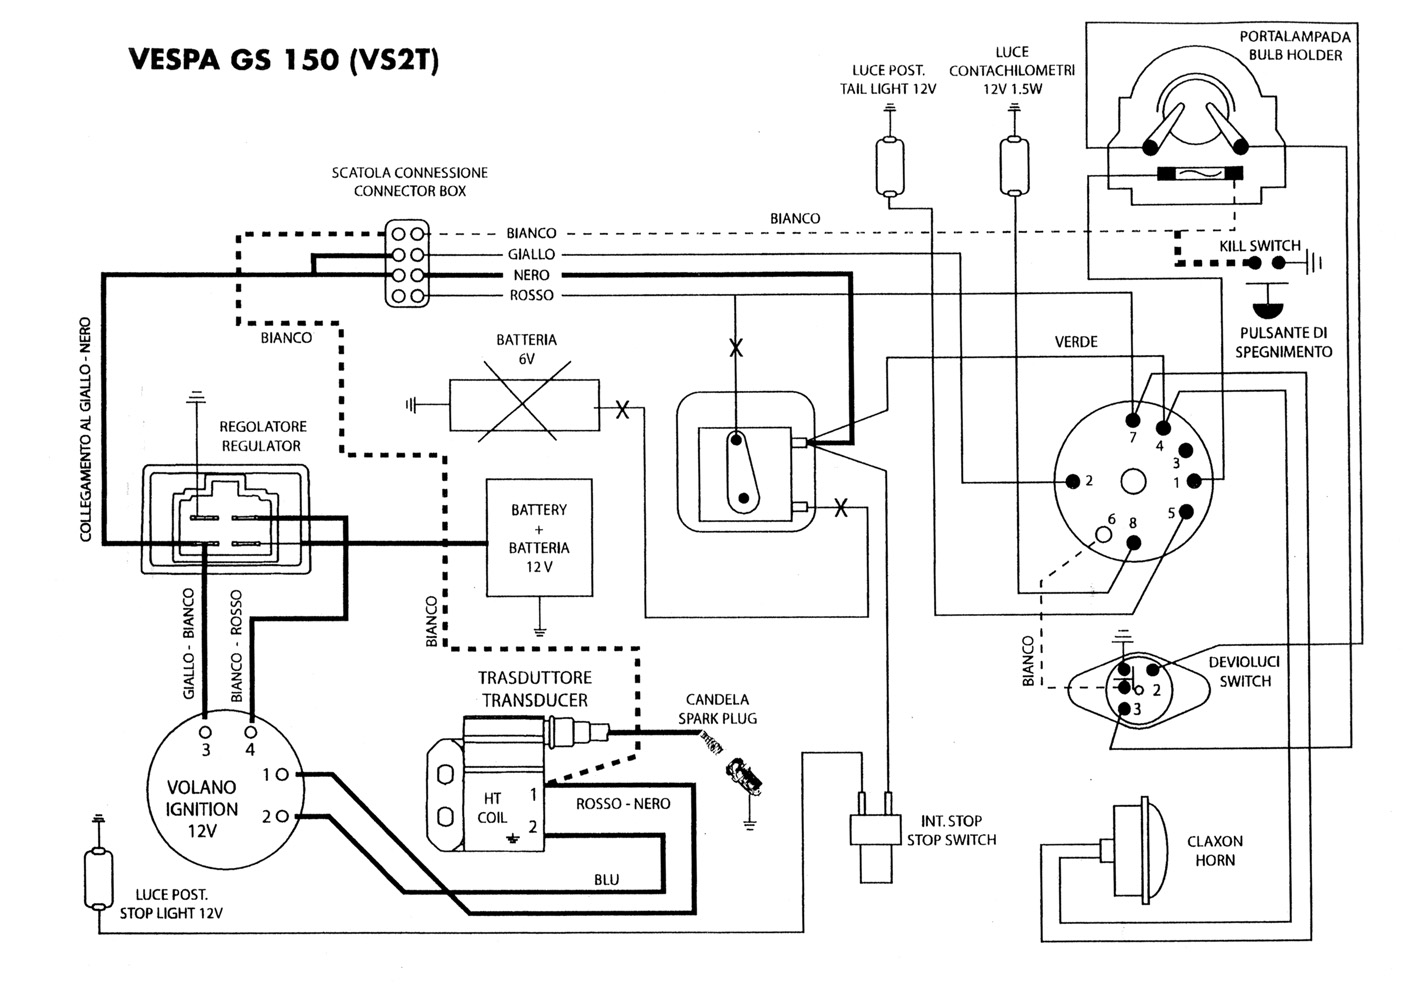 Vespatronic Wiring Diagram Golden Schematic Vespa Pts Schaltplan Gs 150 Vs2 7673024